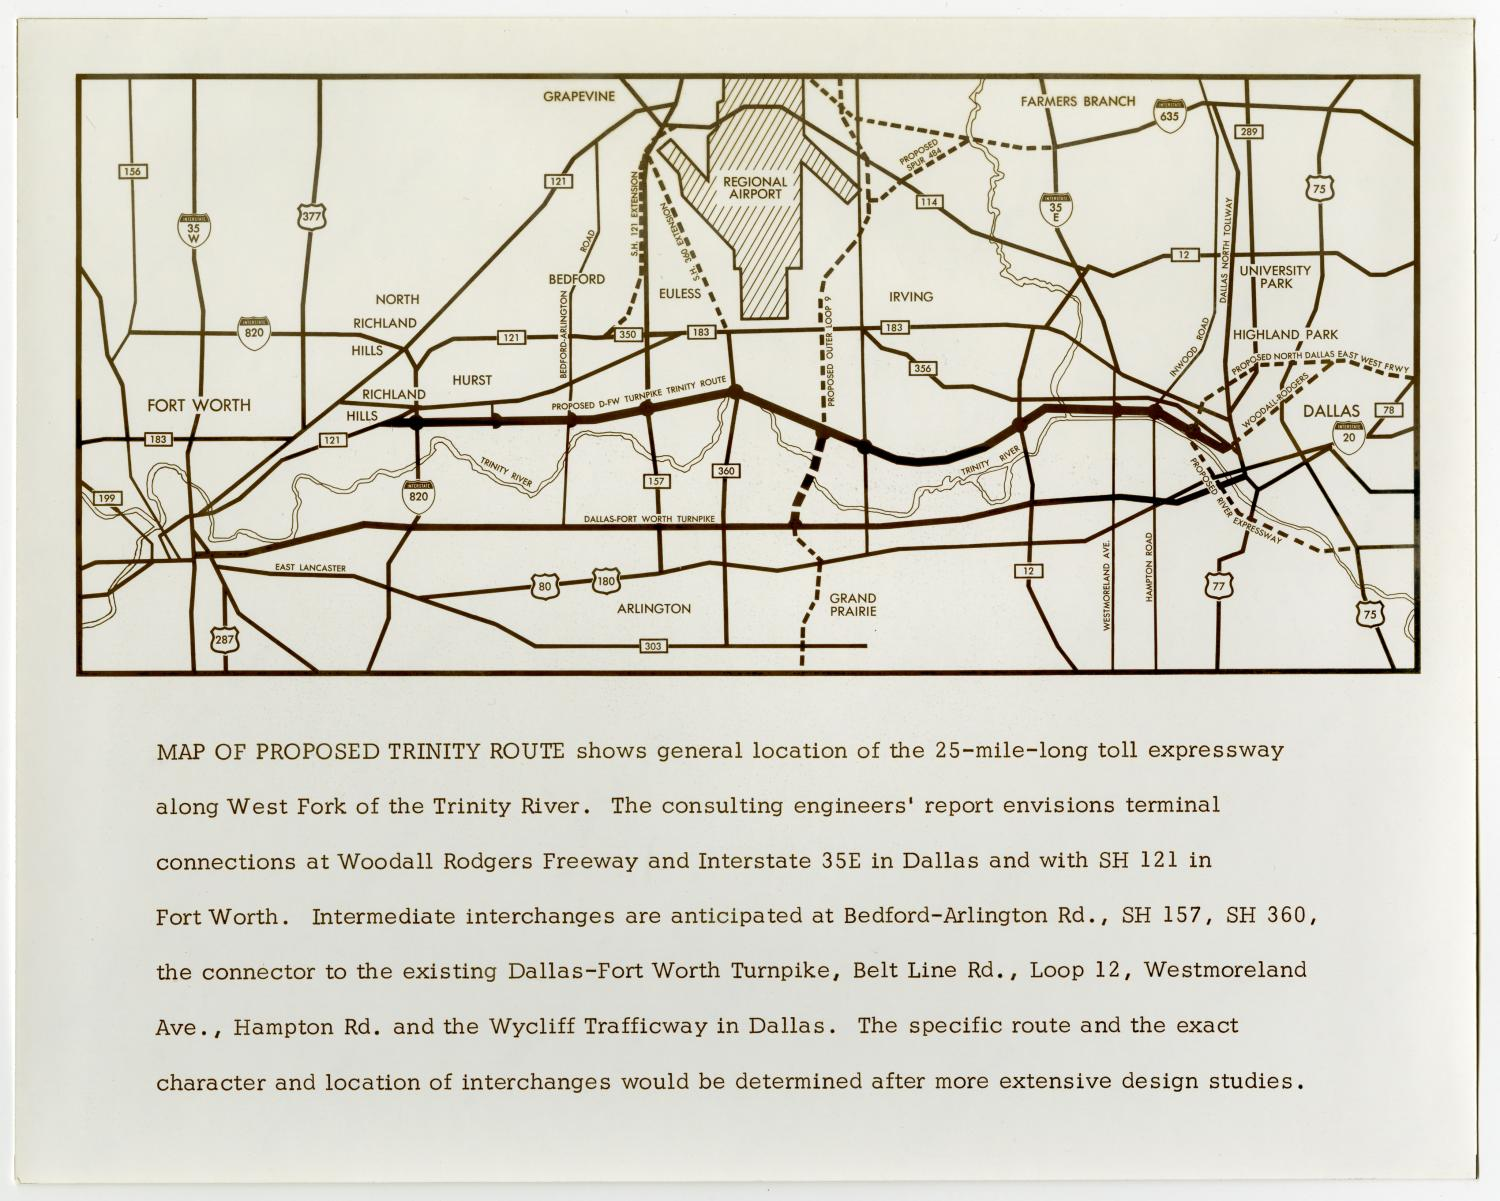 [Map of proposed Trinity Route], Map of the proposed Trinity Route stretching from Dallas to Fort Worth along the Trinity River.,